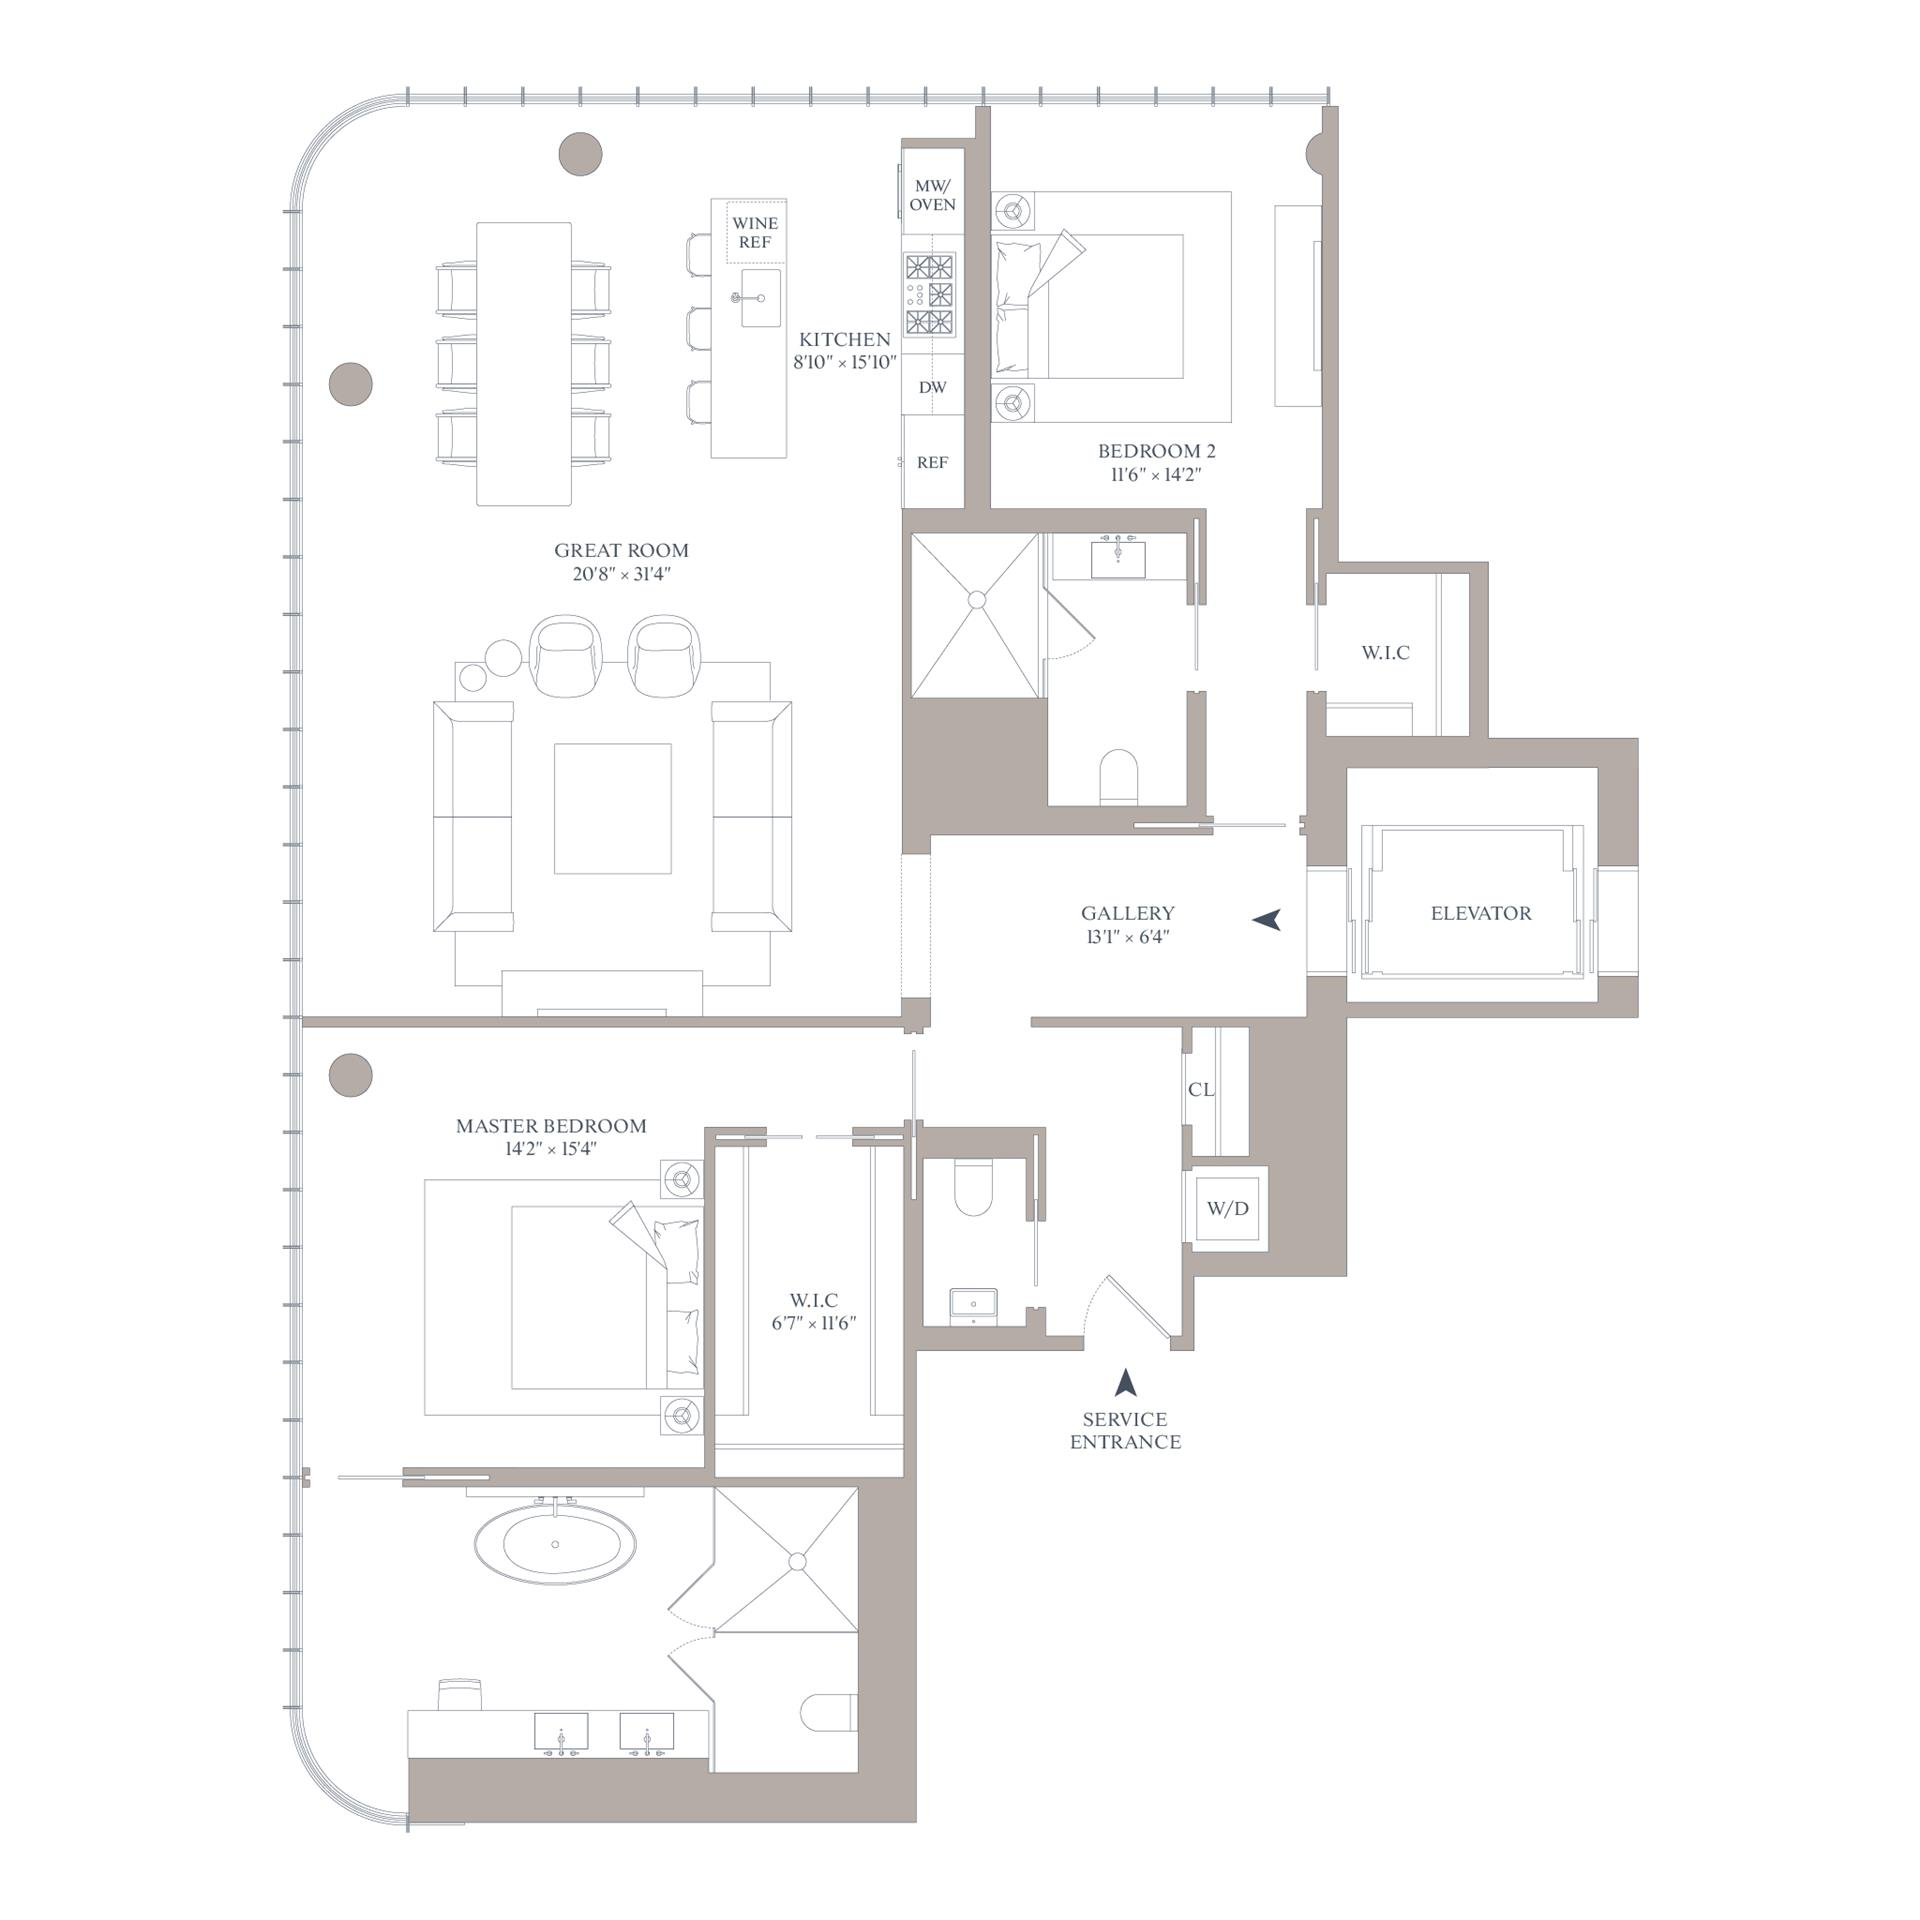 Floor plan of 565 Broome St, N19A - SoHo - Nolita, New York